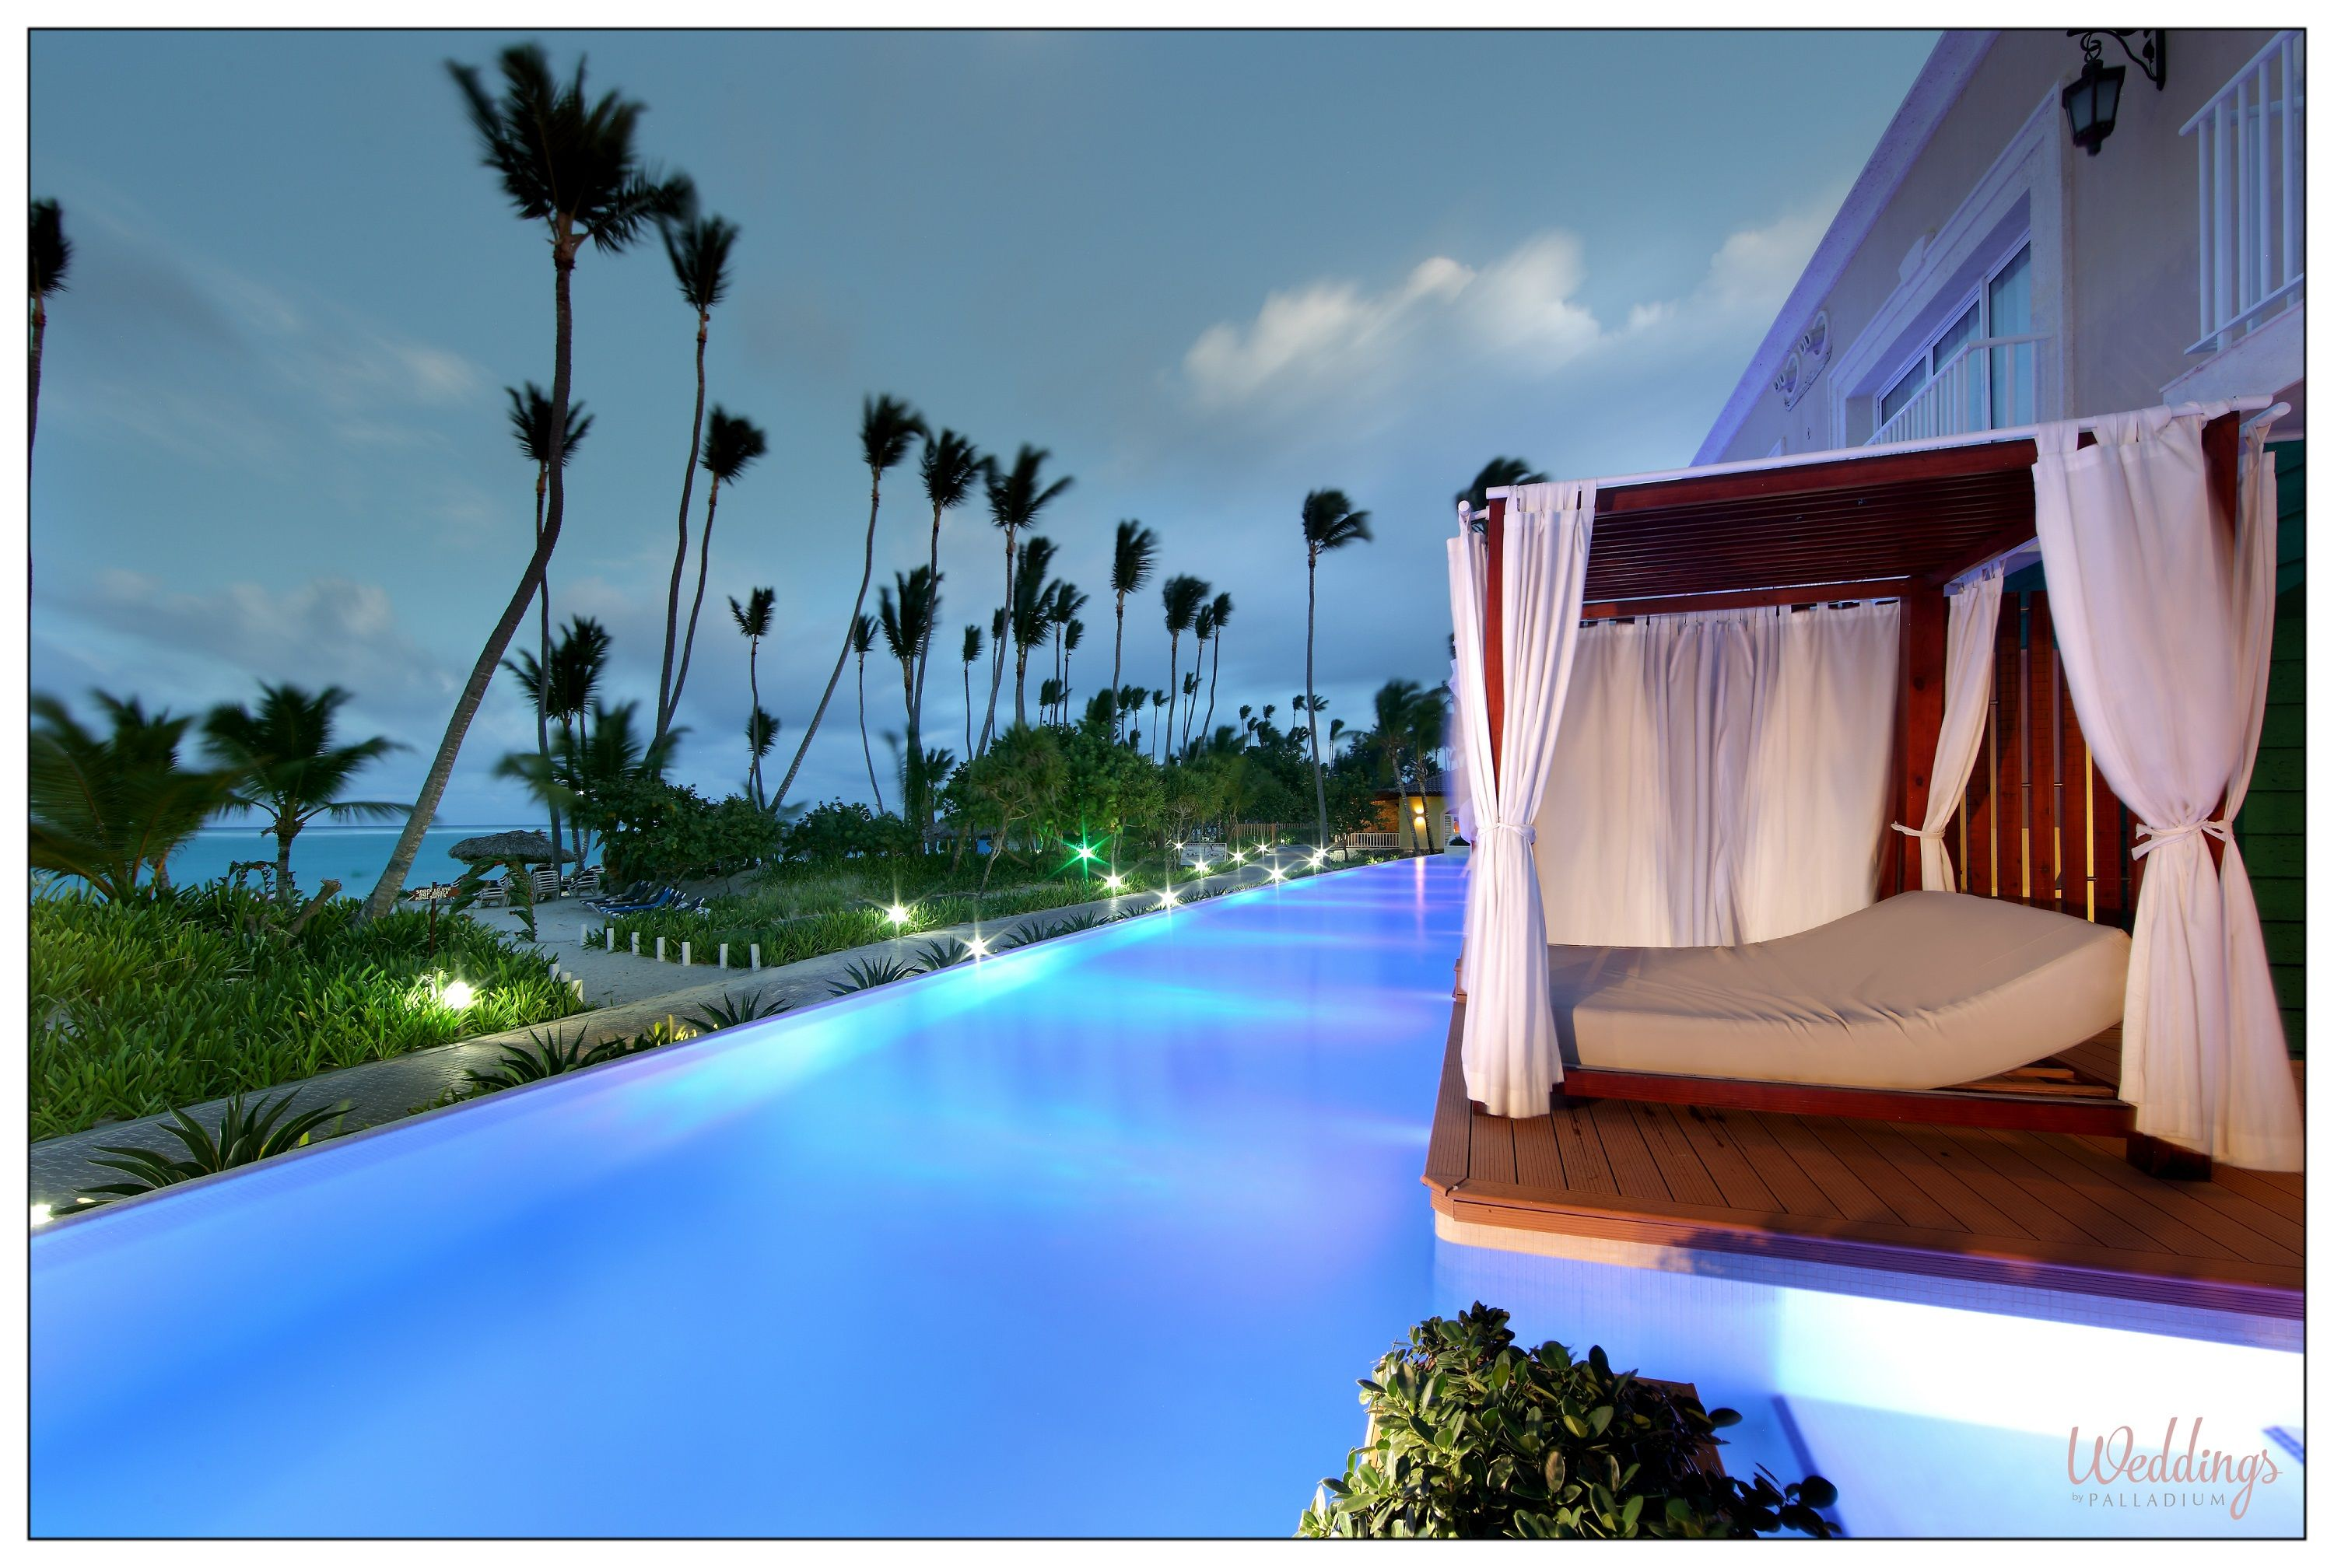 Welcome Home The Royal Suites Turquesa By Palladium Swim Up Rooms Puntacana Theroyalsuites Honeymoon Des Punta Cana Travel Punta Cana Honeymoon Getaways